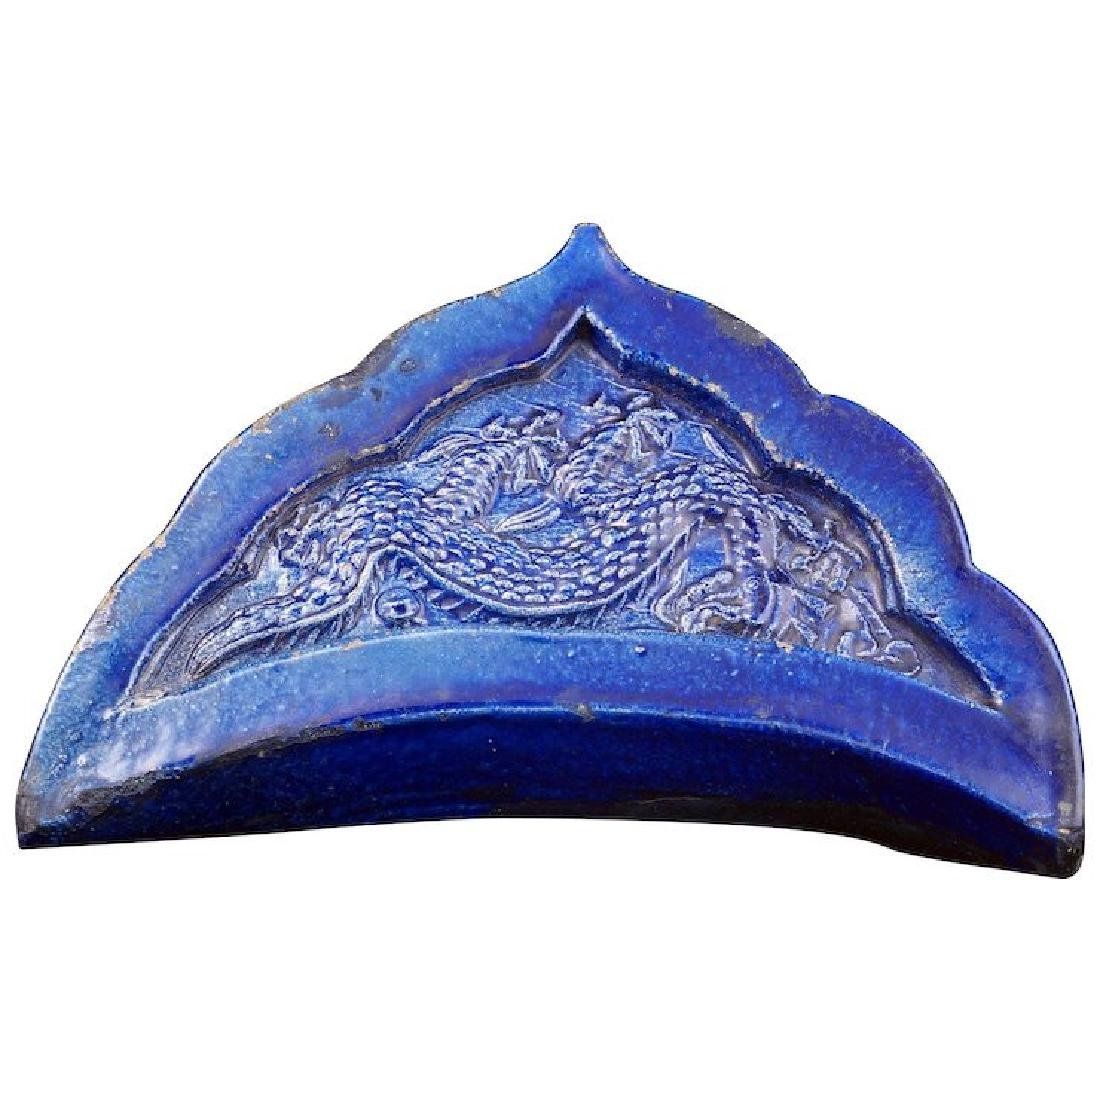 Chinese blue roof tile with five-claw dragon design